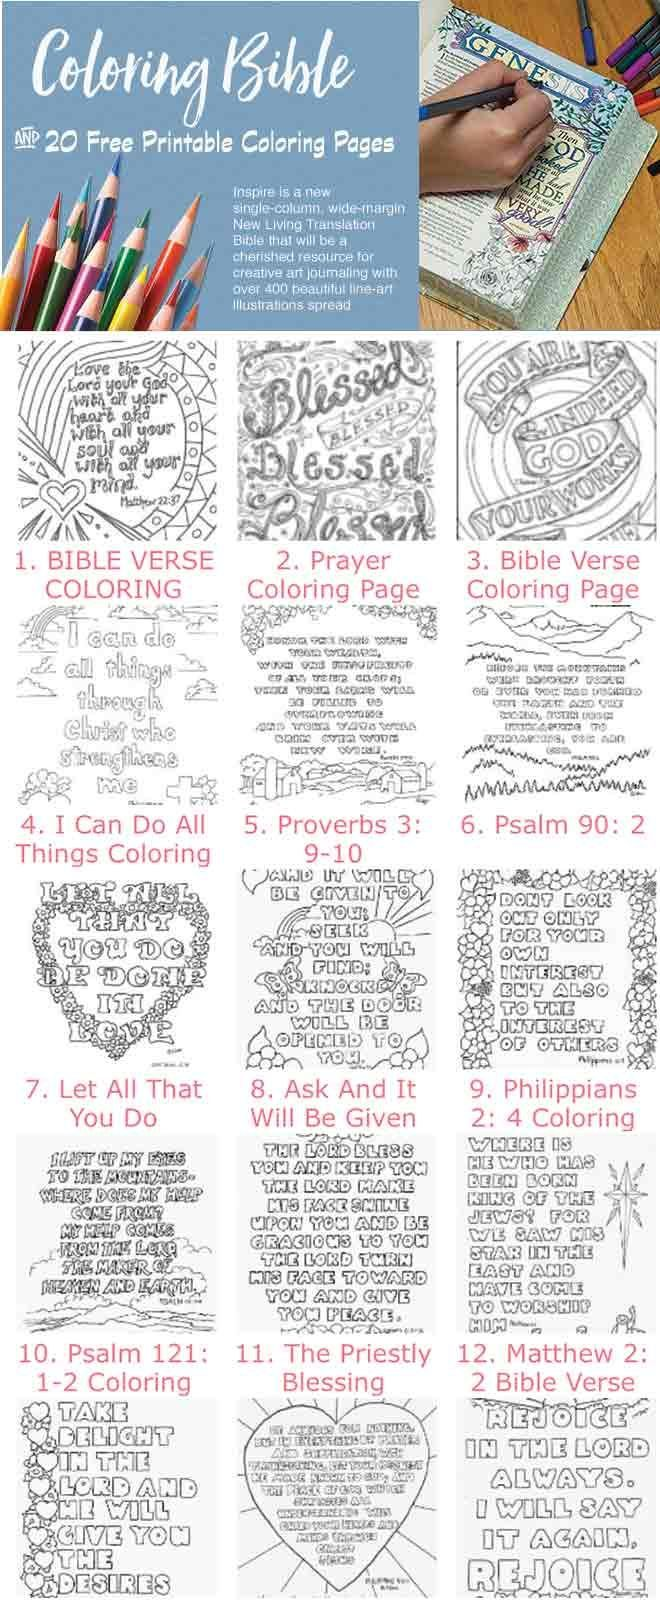 589 best colouring pages images on pinterest coloring books